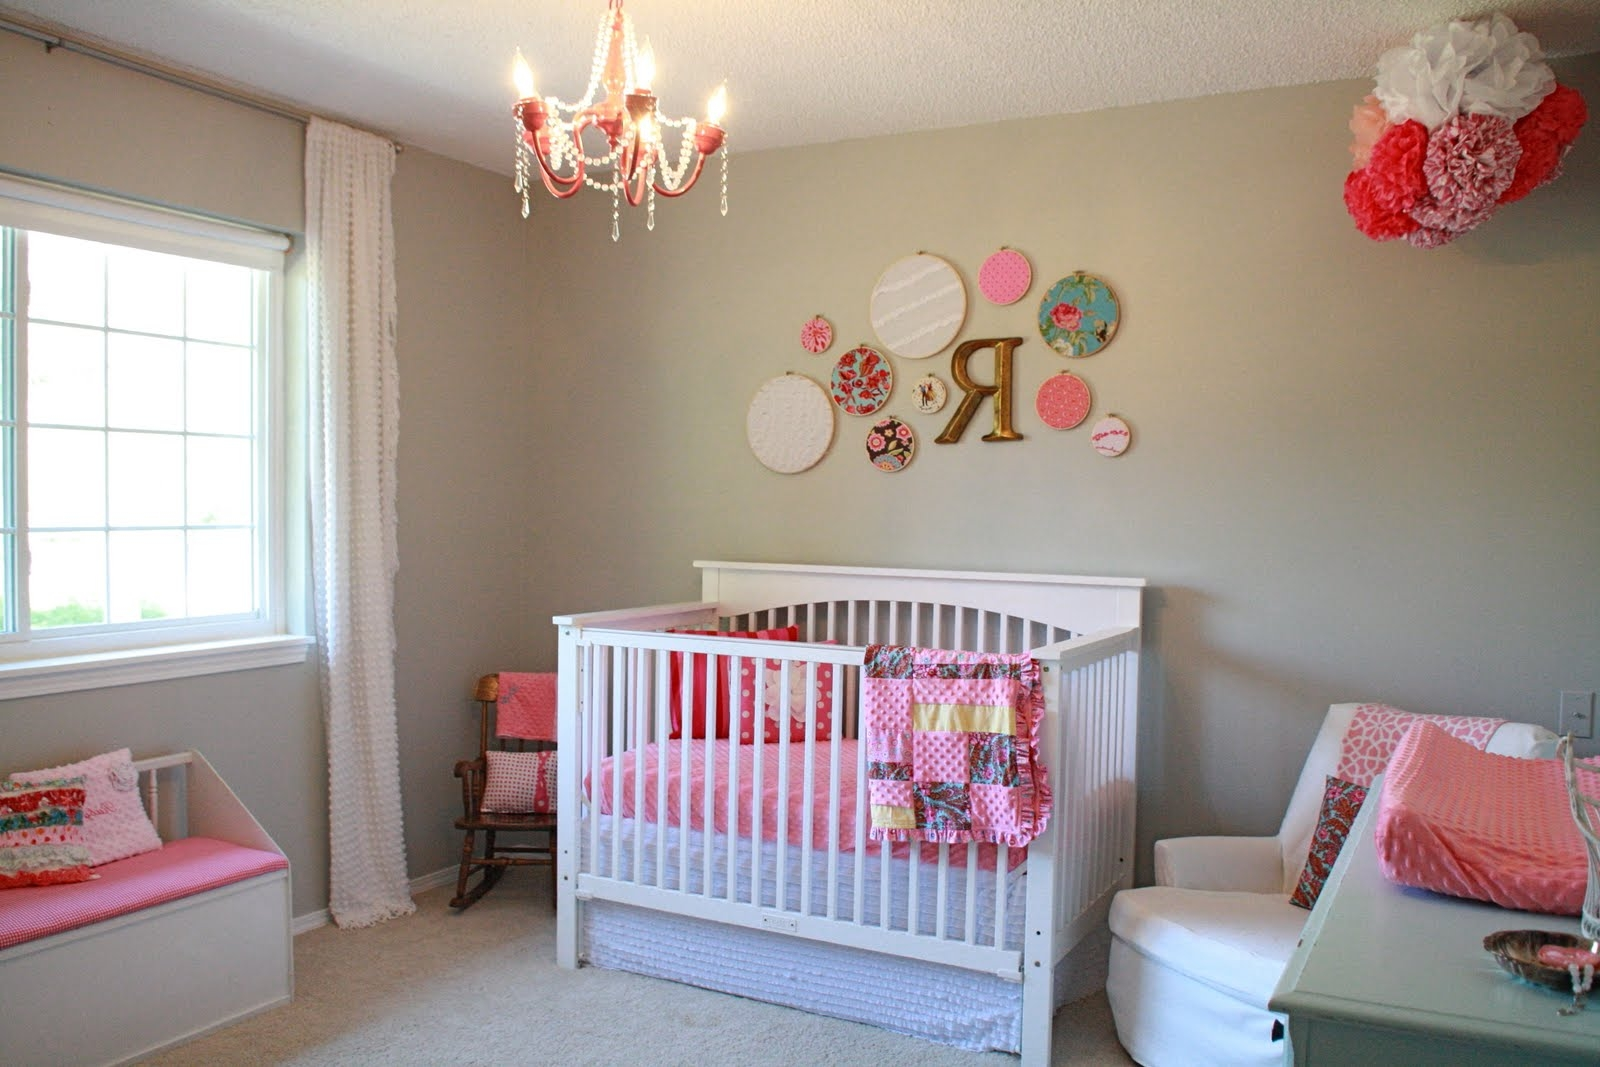 Baby girl room decor ideas for Room design themes